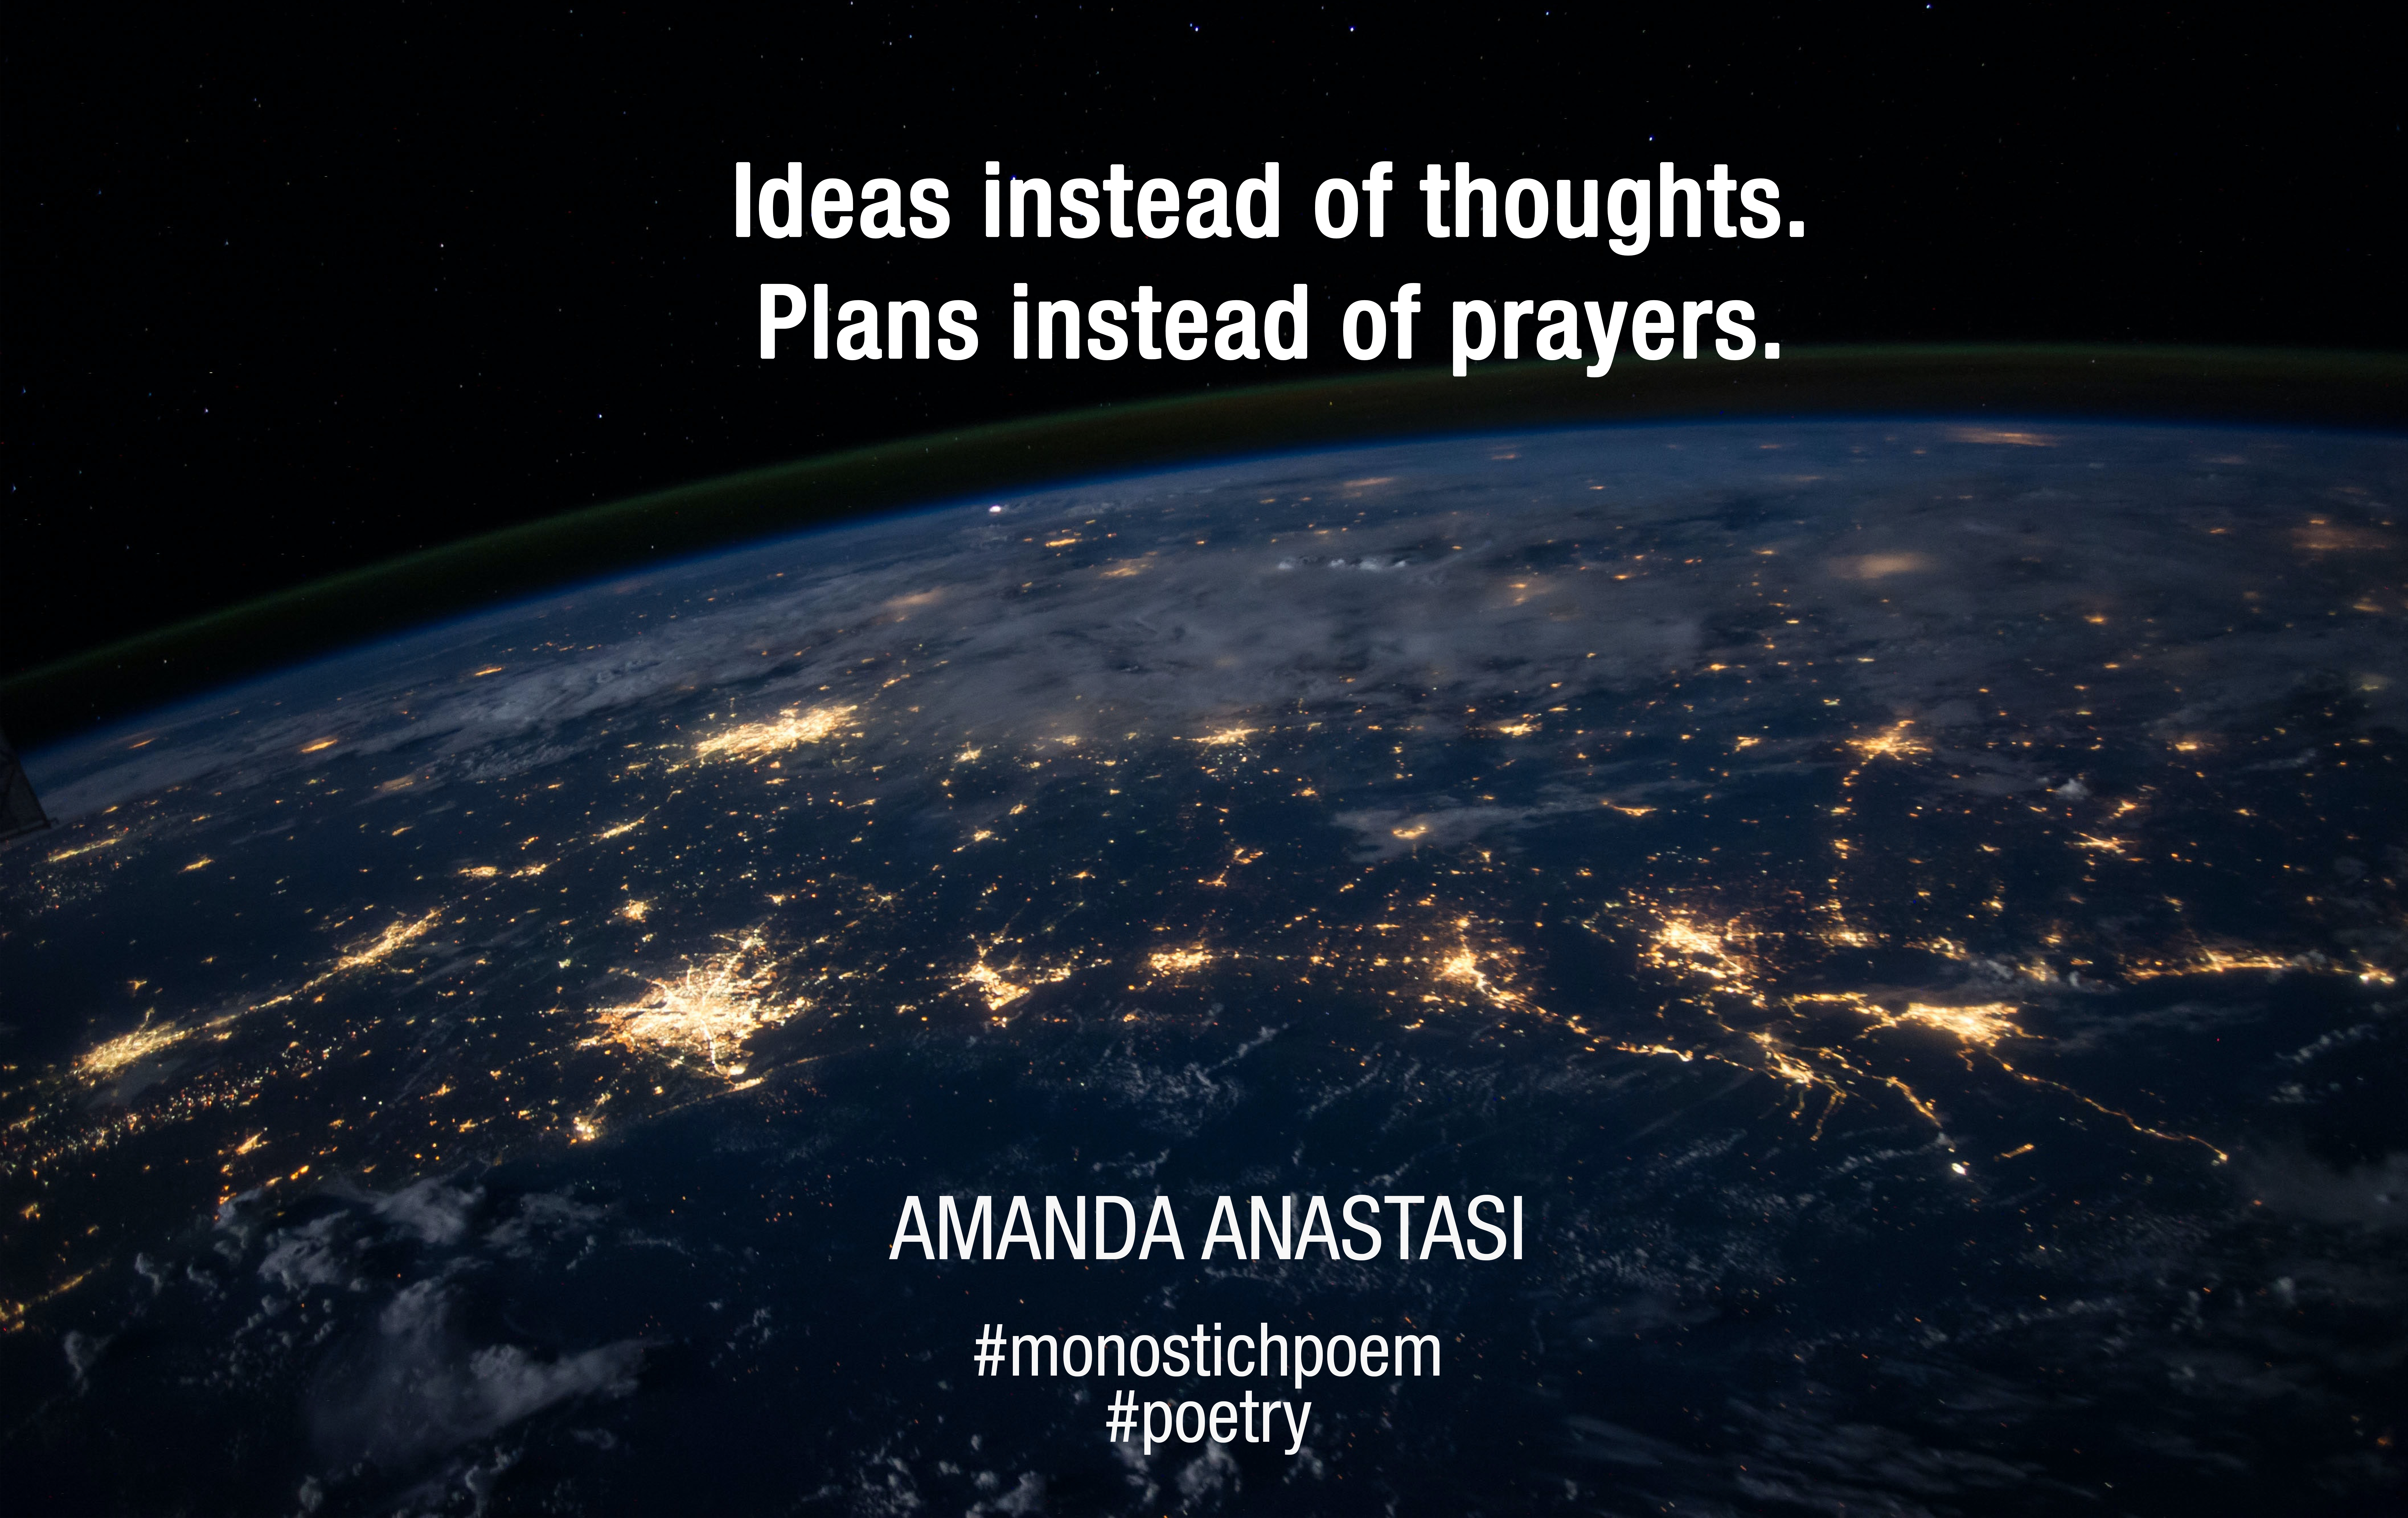 Ideas instead of thoughts. Plans instead of prayers.